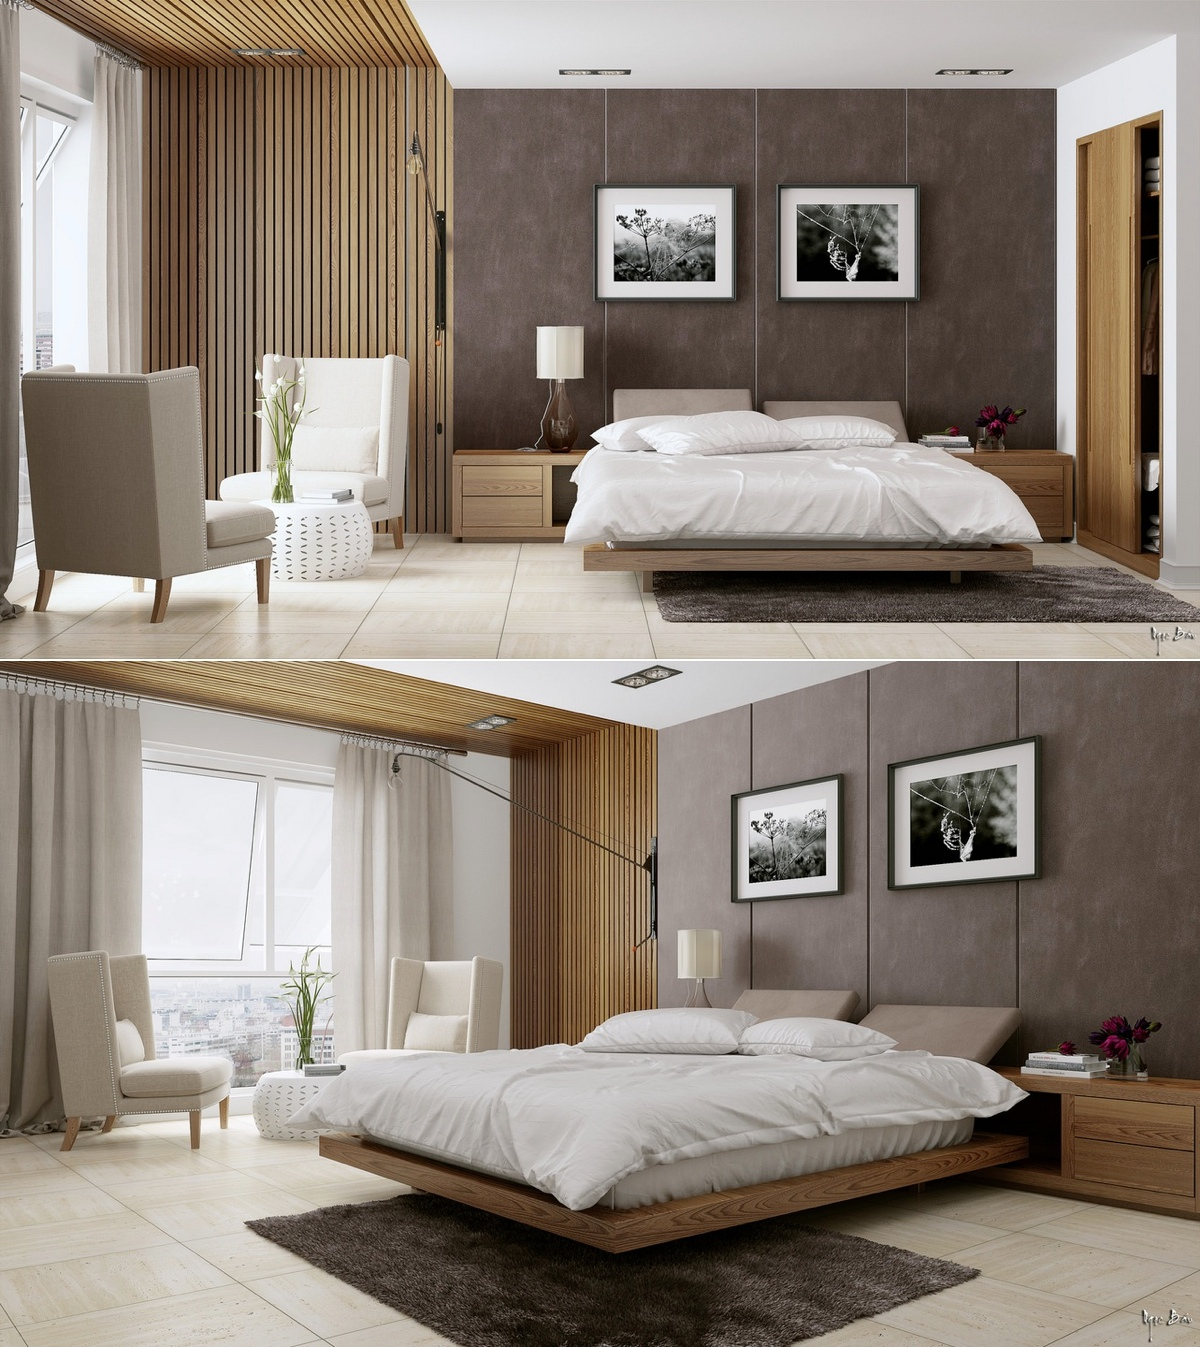 Stylish bedroom designs with beautiful creative details - Design of bed ...